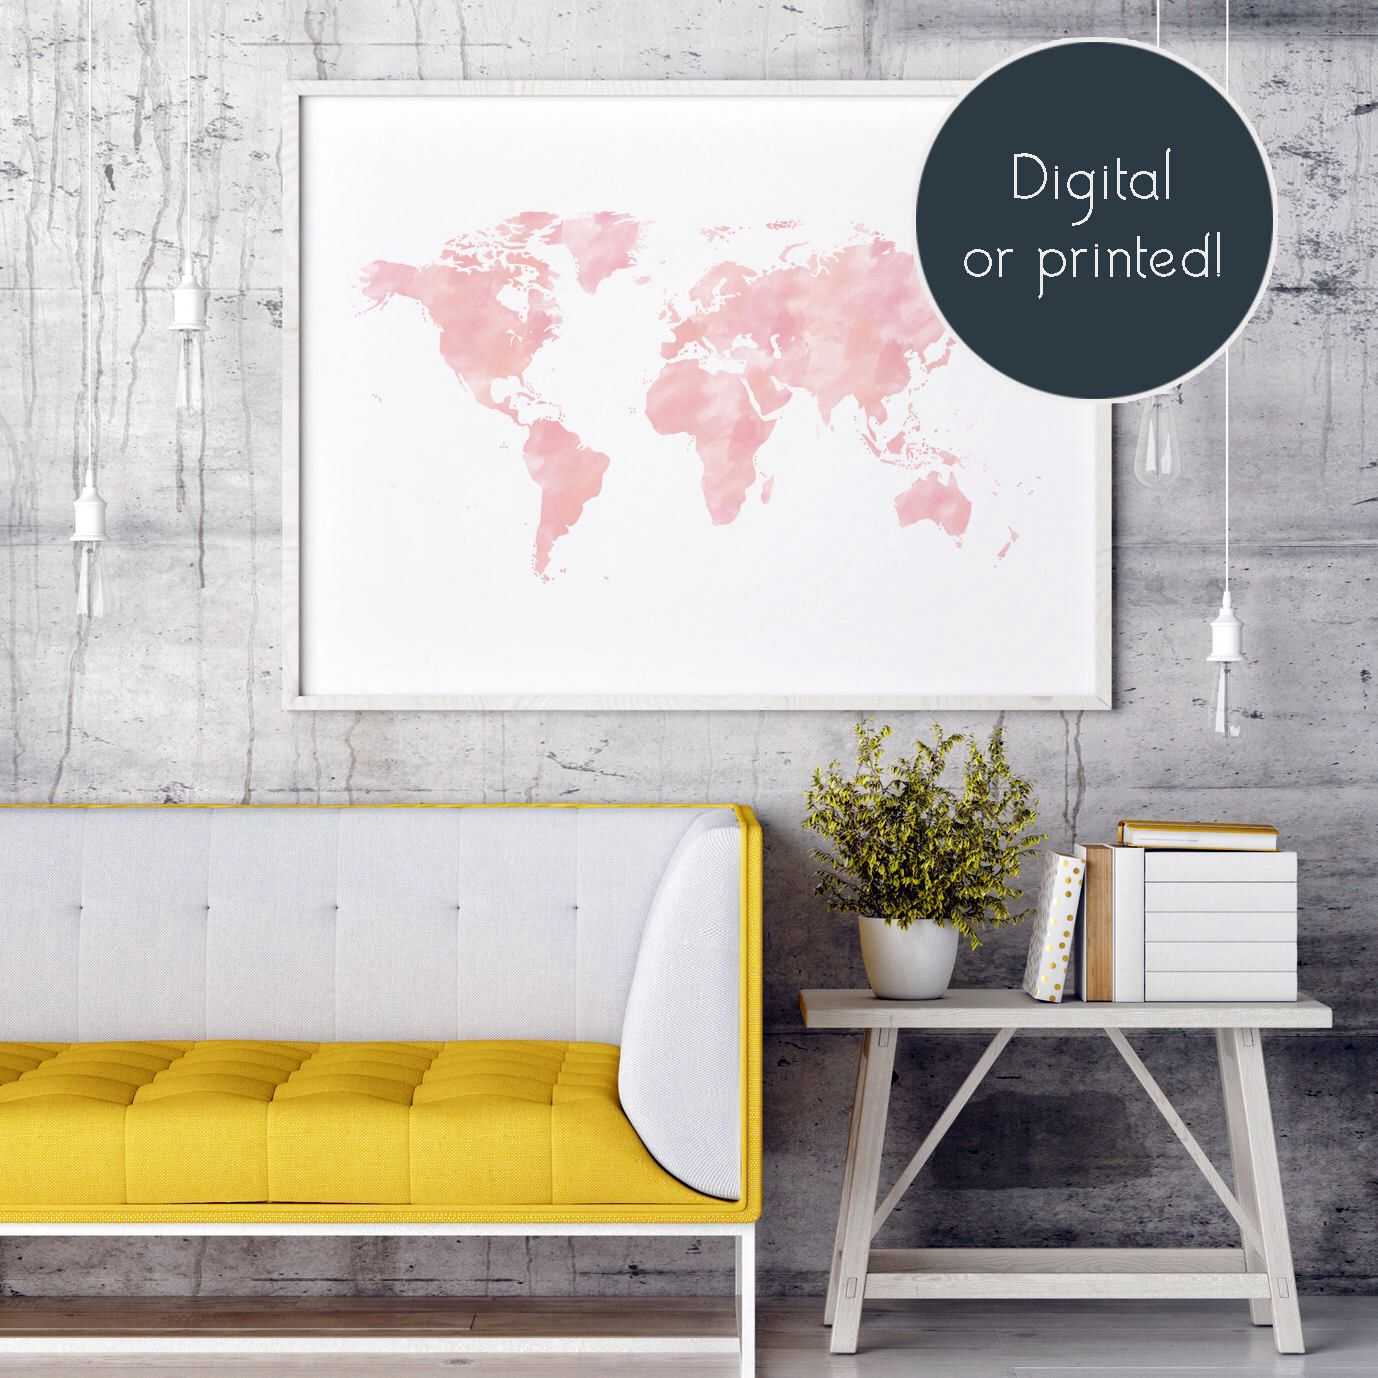 Art rose world map art nursery world map nursery print world map art rose world map art nursery world map nursery print world map rose print rose world map print nude world map nude blush pink by minimalistgraphic gumiabroncs Choice Image